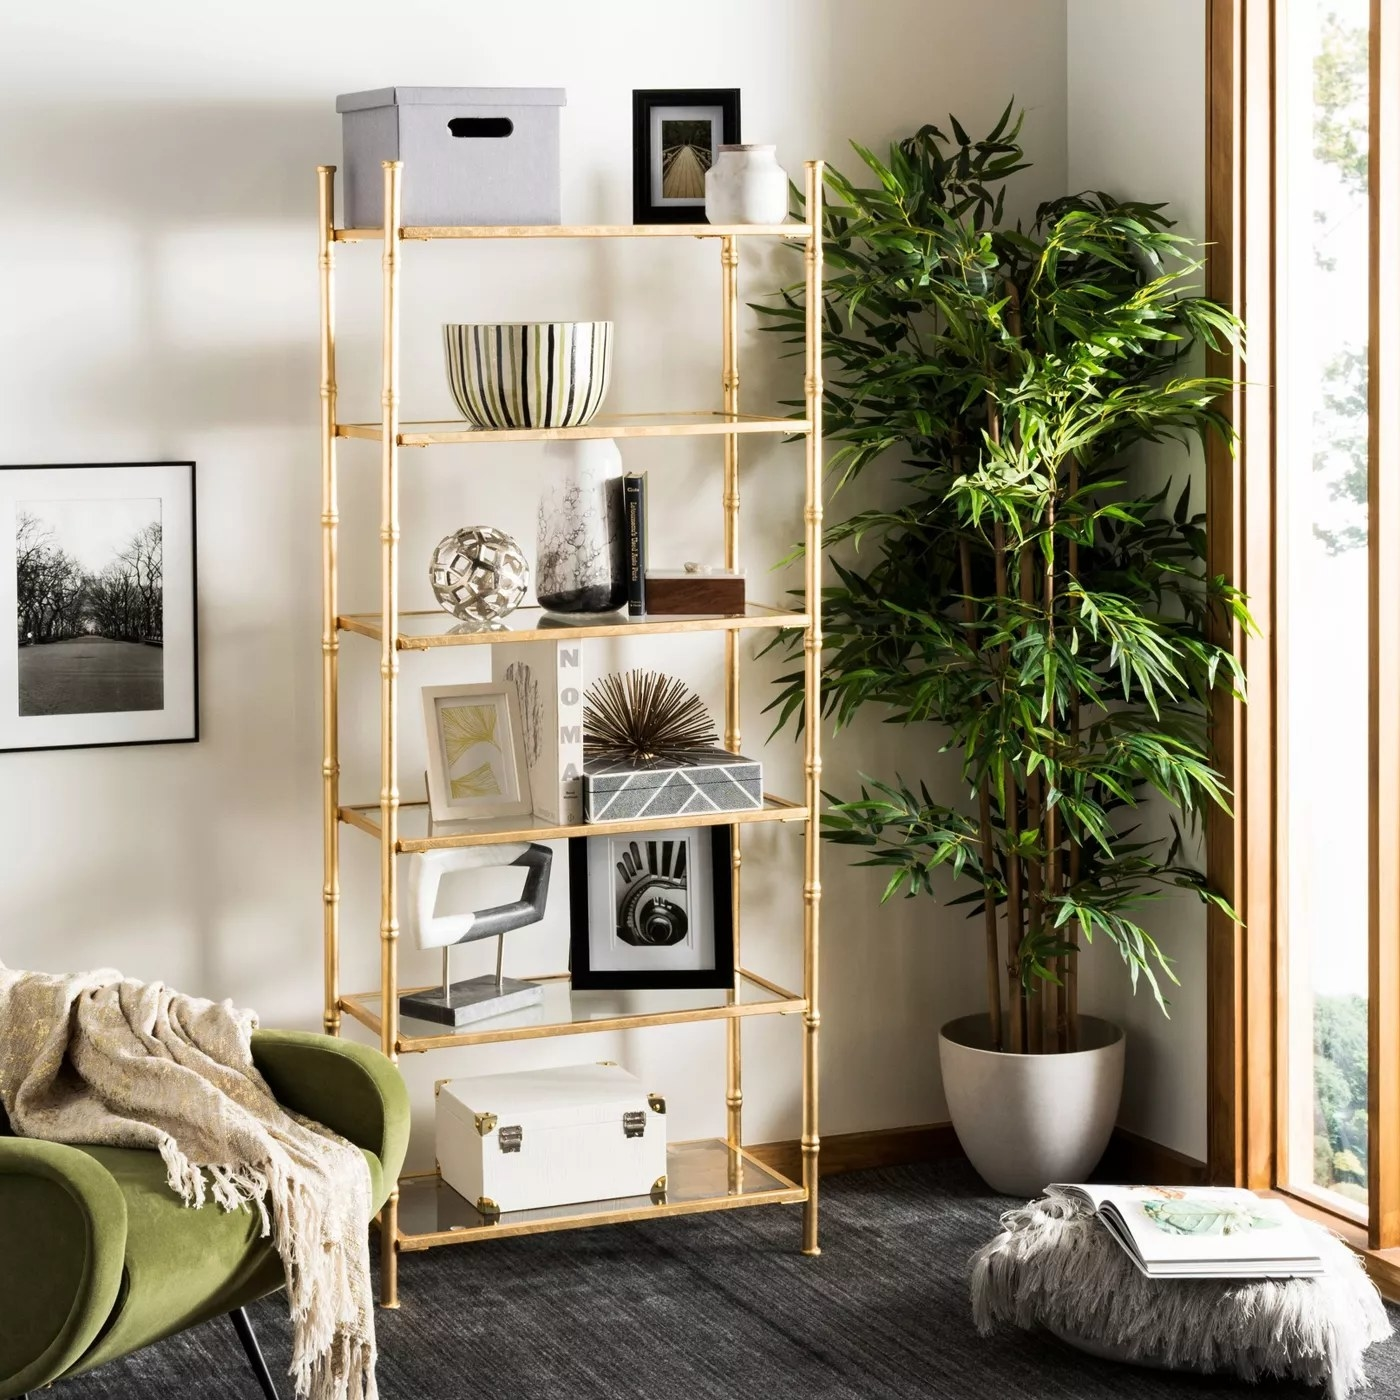 The gold and glass shelving unit